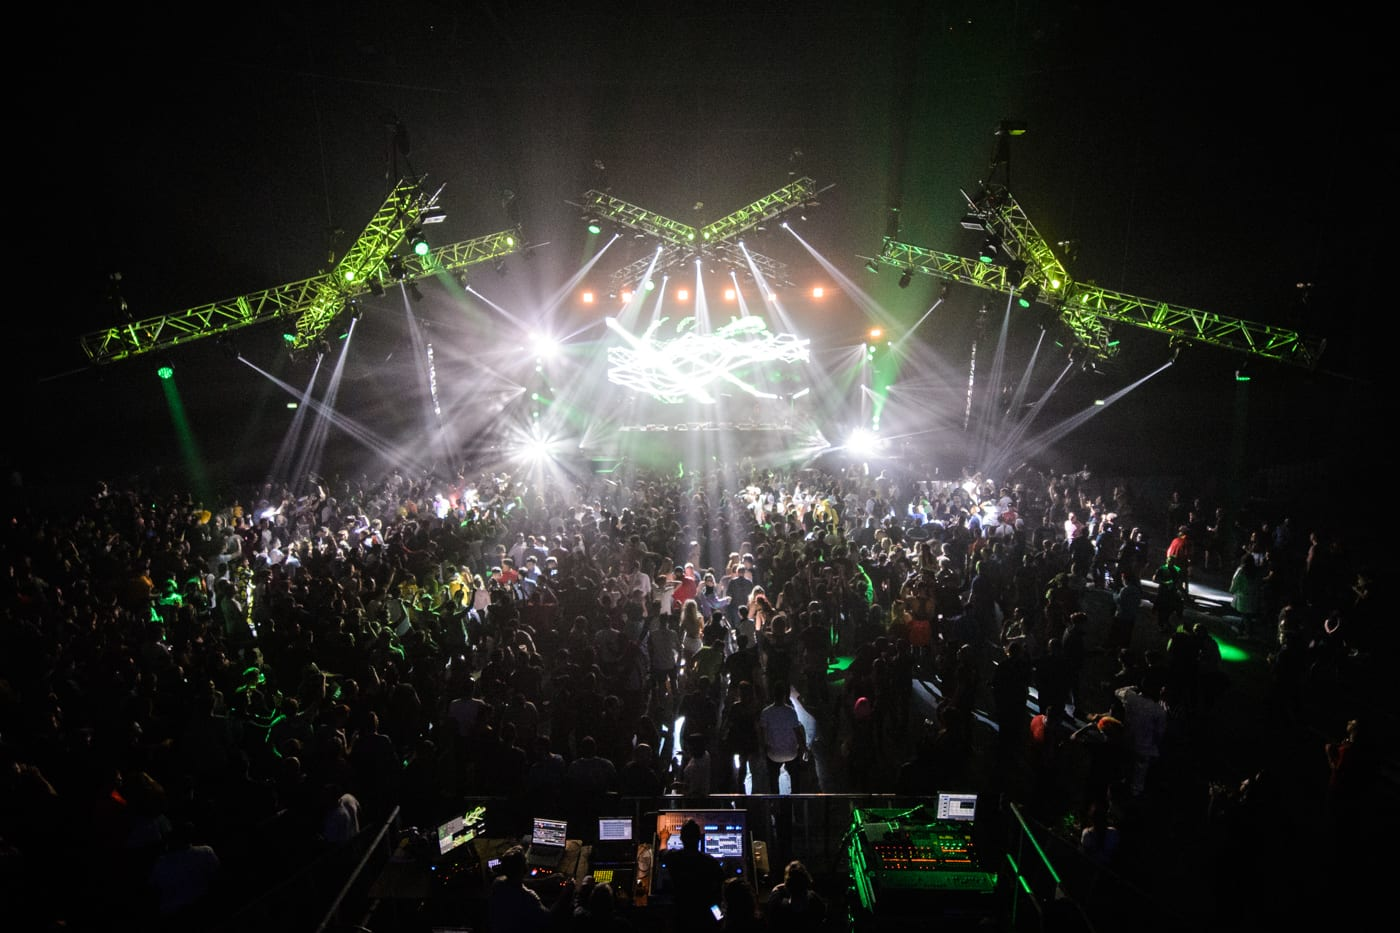 winterparty-at-3arena-dublin-30-10-2016-by-sean-smyth-21-of-53